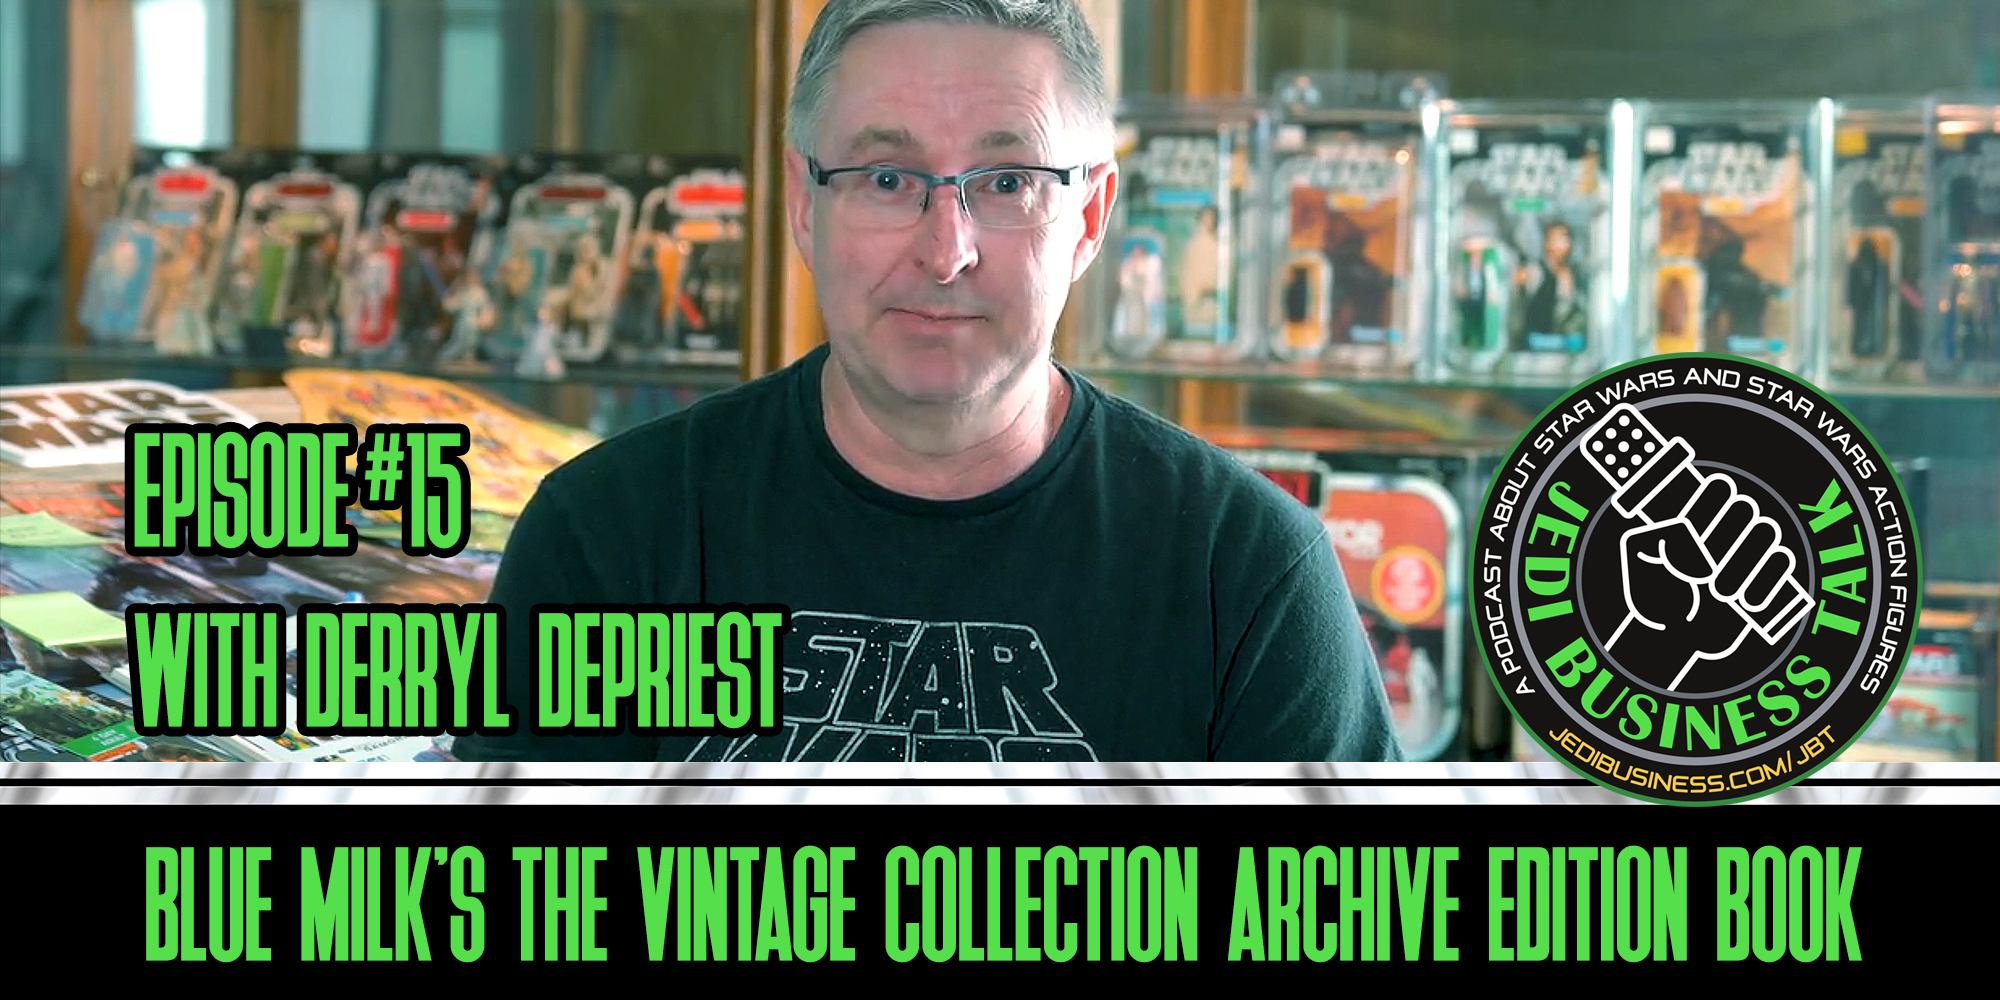 JBT Jedi Business Talk - Derryl DePriest And Blue Milk's Vintage Collection Archive Edition Book